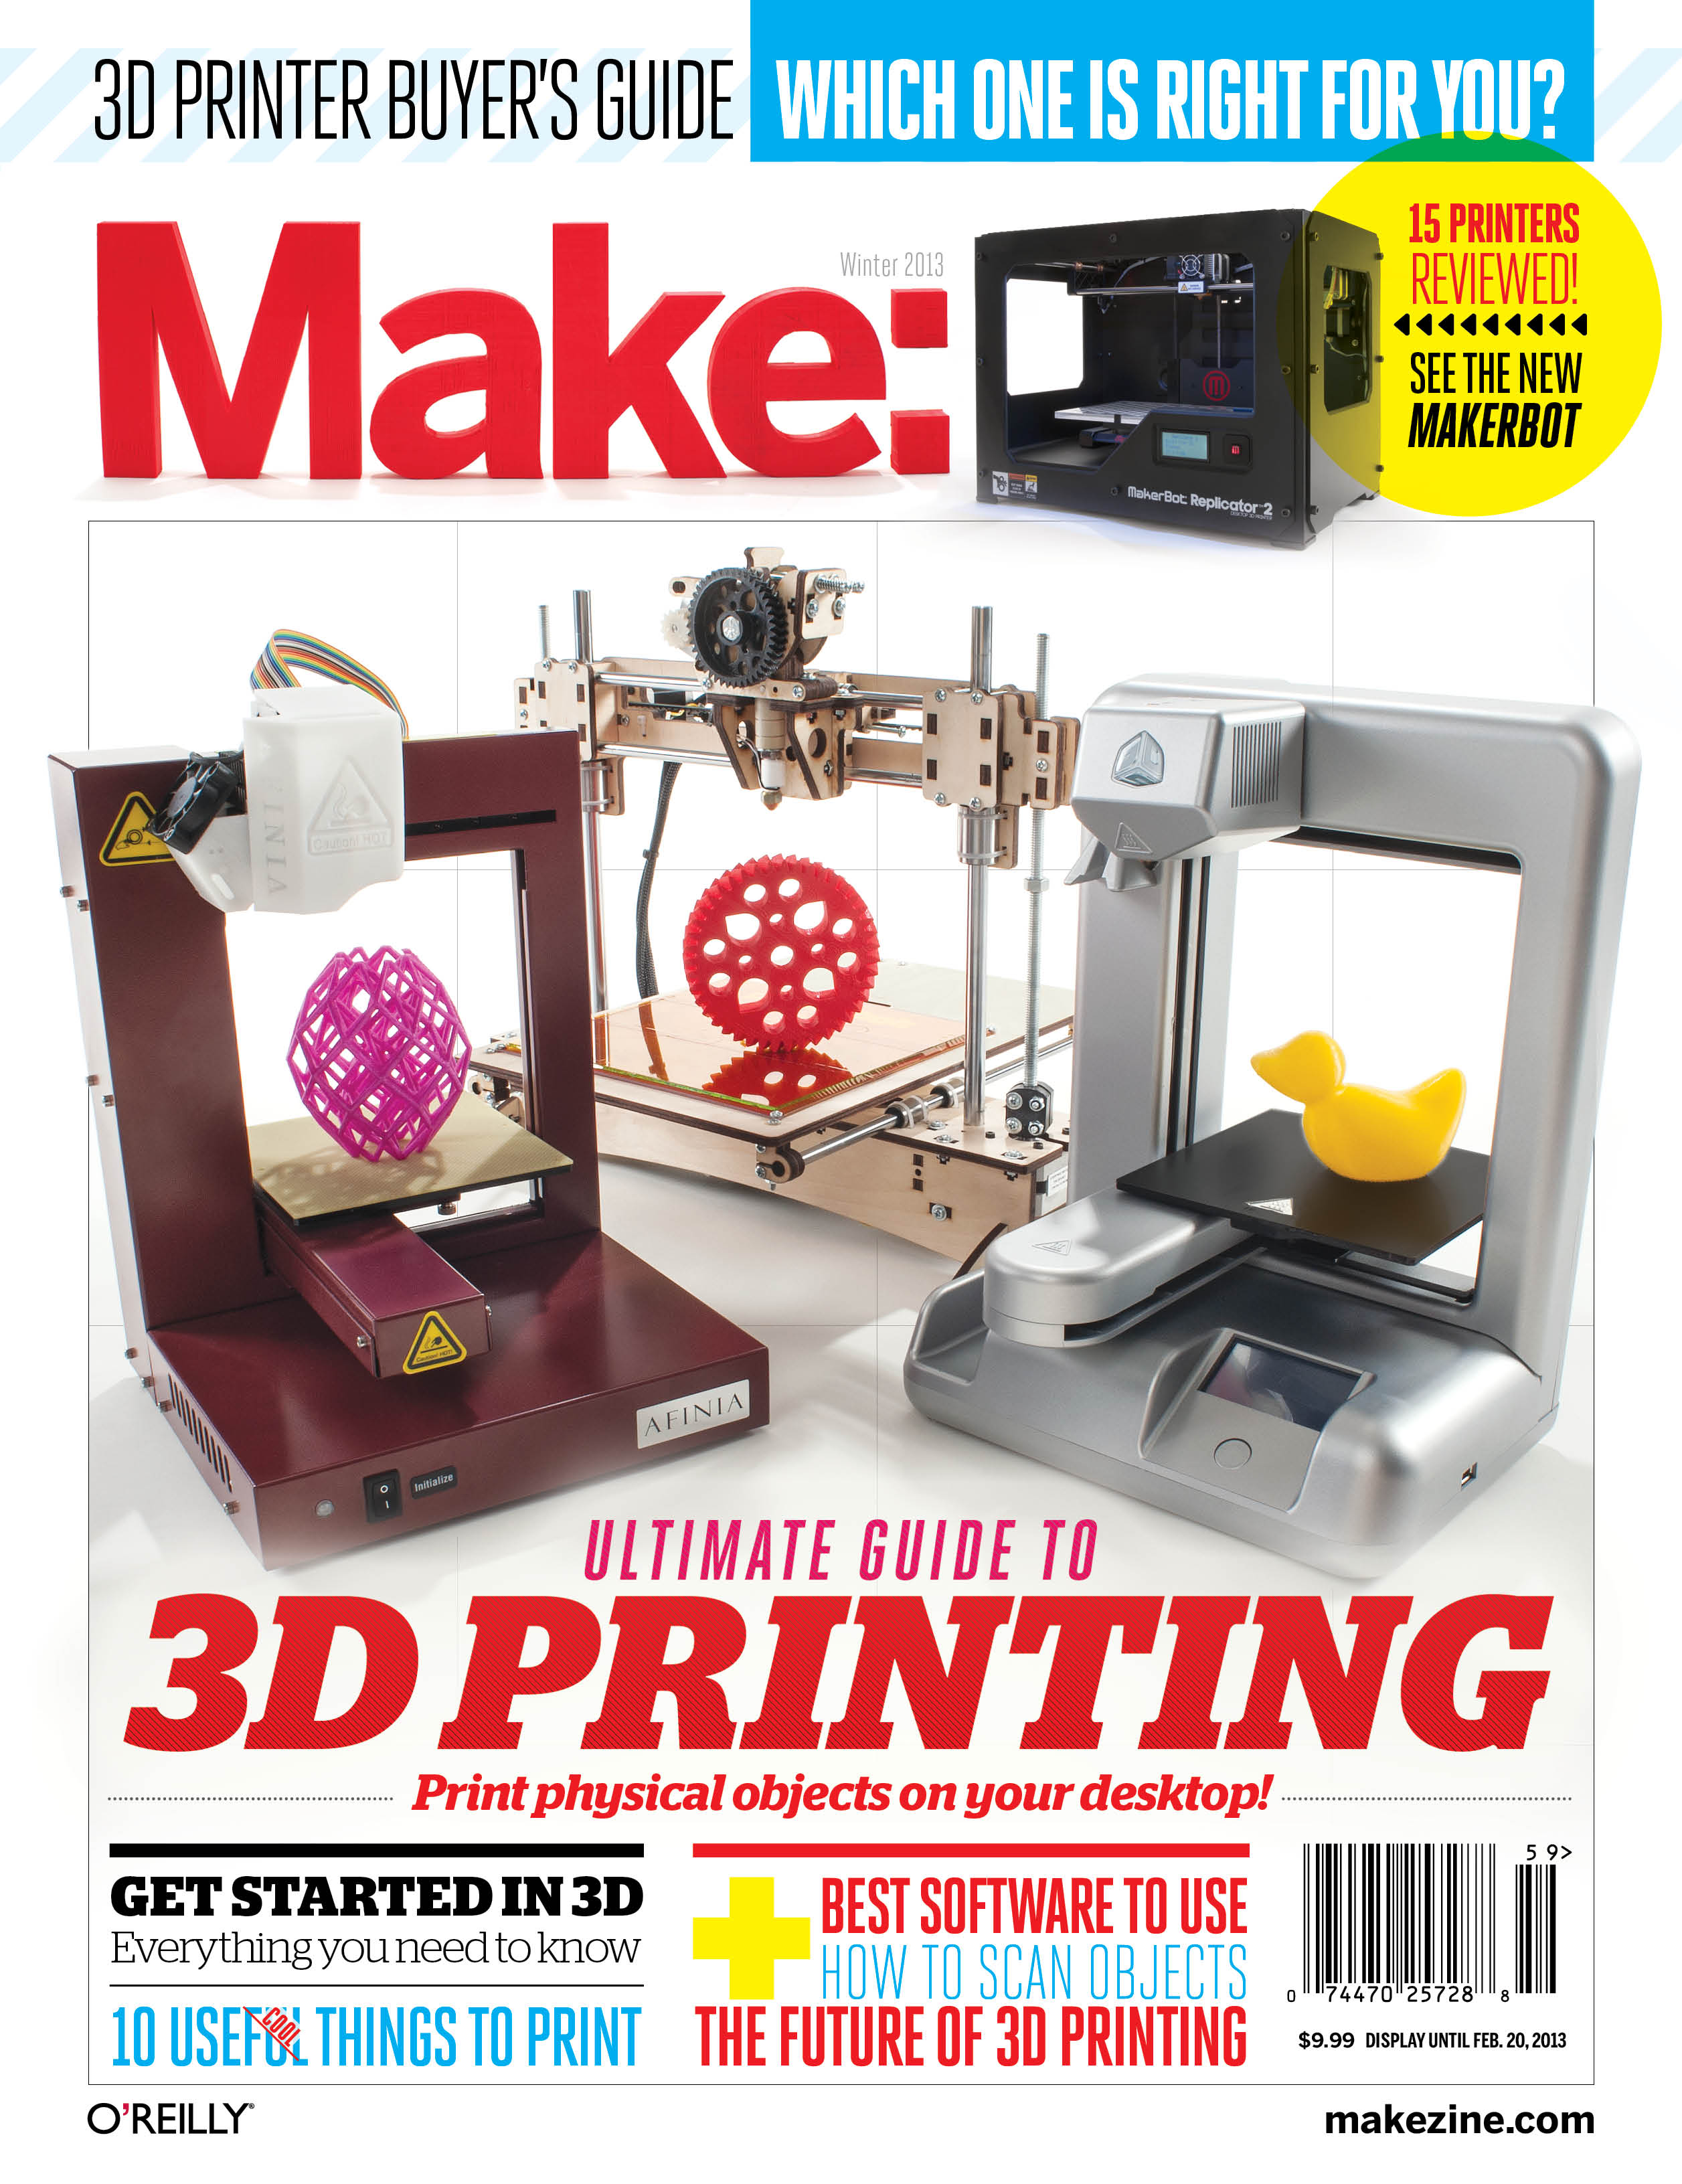 MAKE's Ultimate Guide to 3D Printing